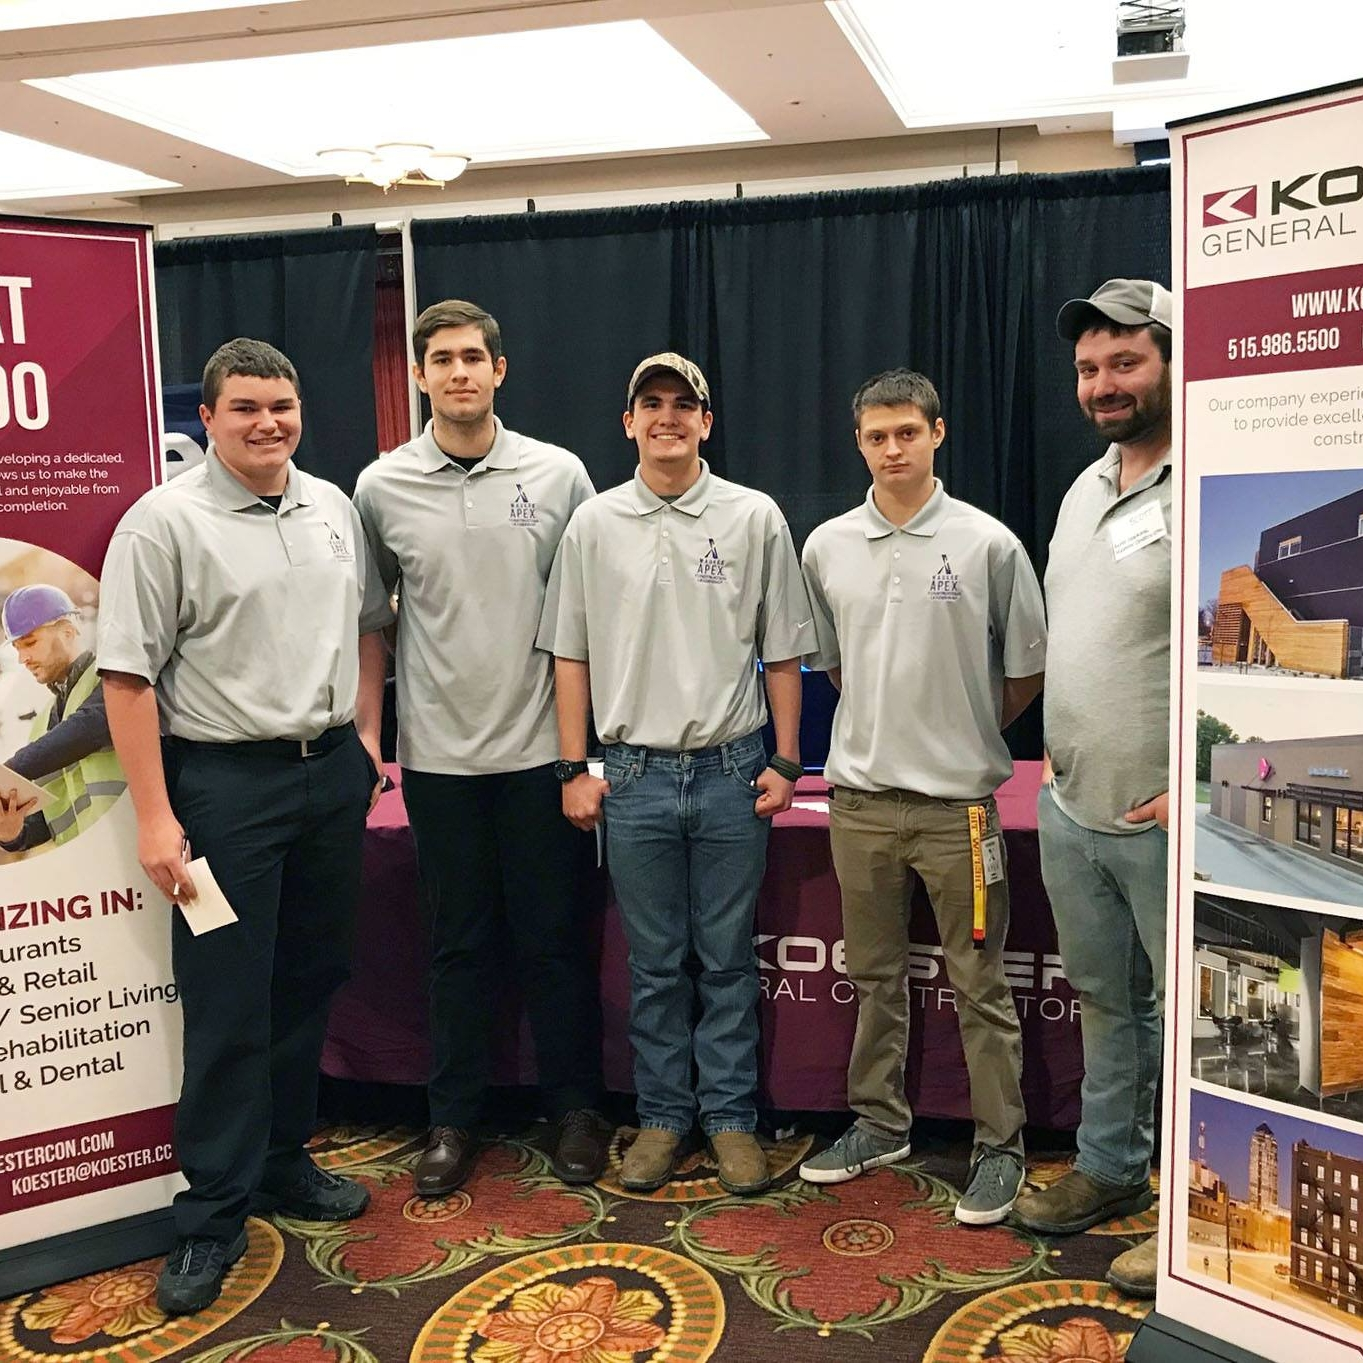 April 17, 2018   Yesterday we talked with over 150 students at the  Build Iowa  Career Fair! We are inspired by the next generation looking to build their future in the construction industry. Thanks to  Master Builders of Iowa  for hosting this great event!